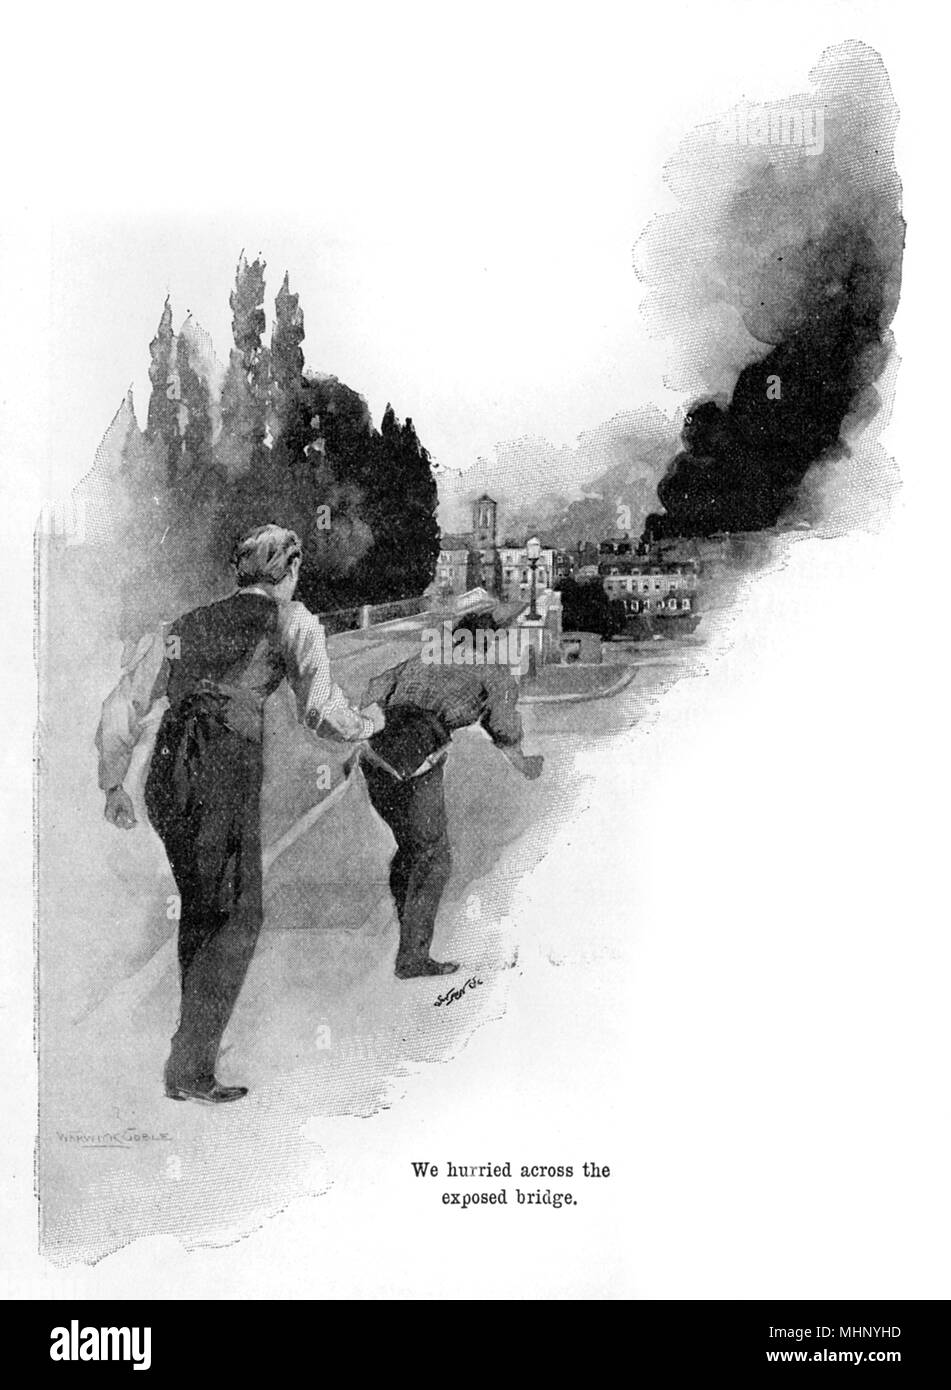 The narrator and the curate hurry across the exposed Richmond Bridge. The War of the Worlds is a science fiction novel by English author H. G. Wells (1866-1946). This plate comes from the first serialised version, published in 1897 by Pearson's Magazine in the UK.     Date: 1897 - Stock Image